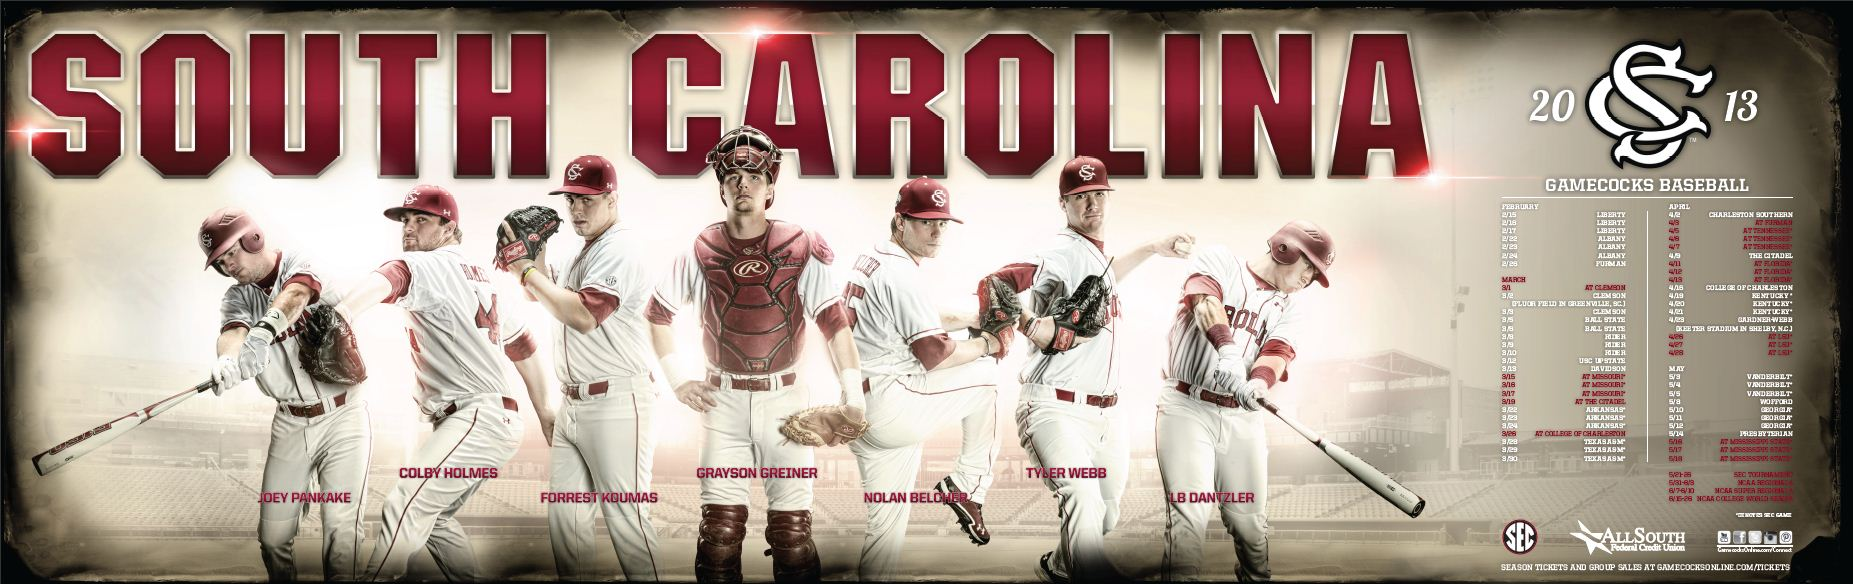 gamecock baseball – south carolina team – the usc athletic page